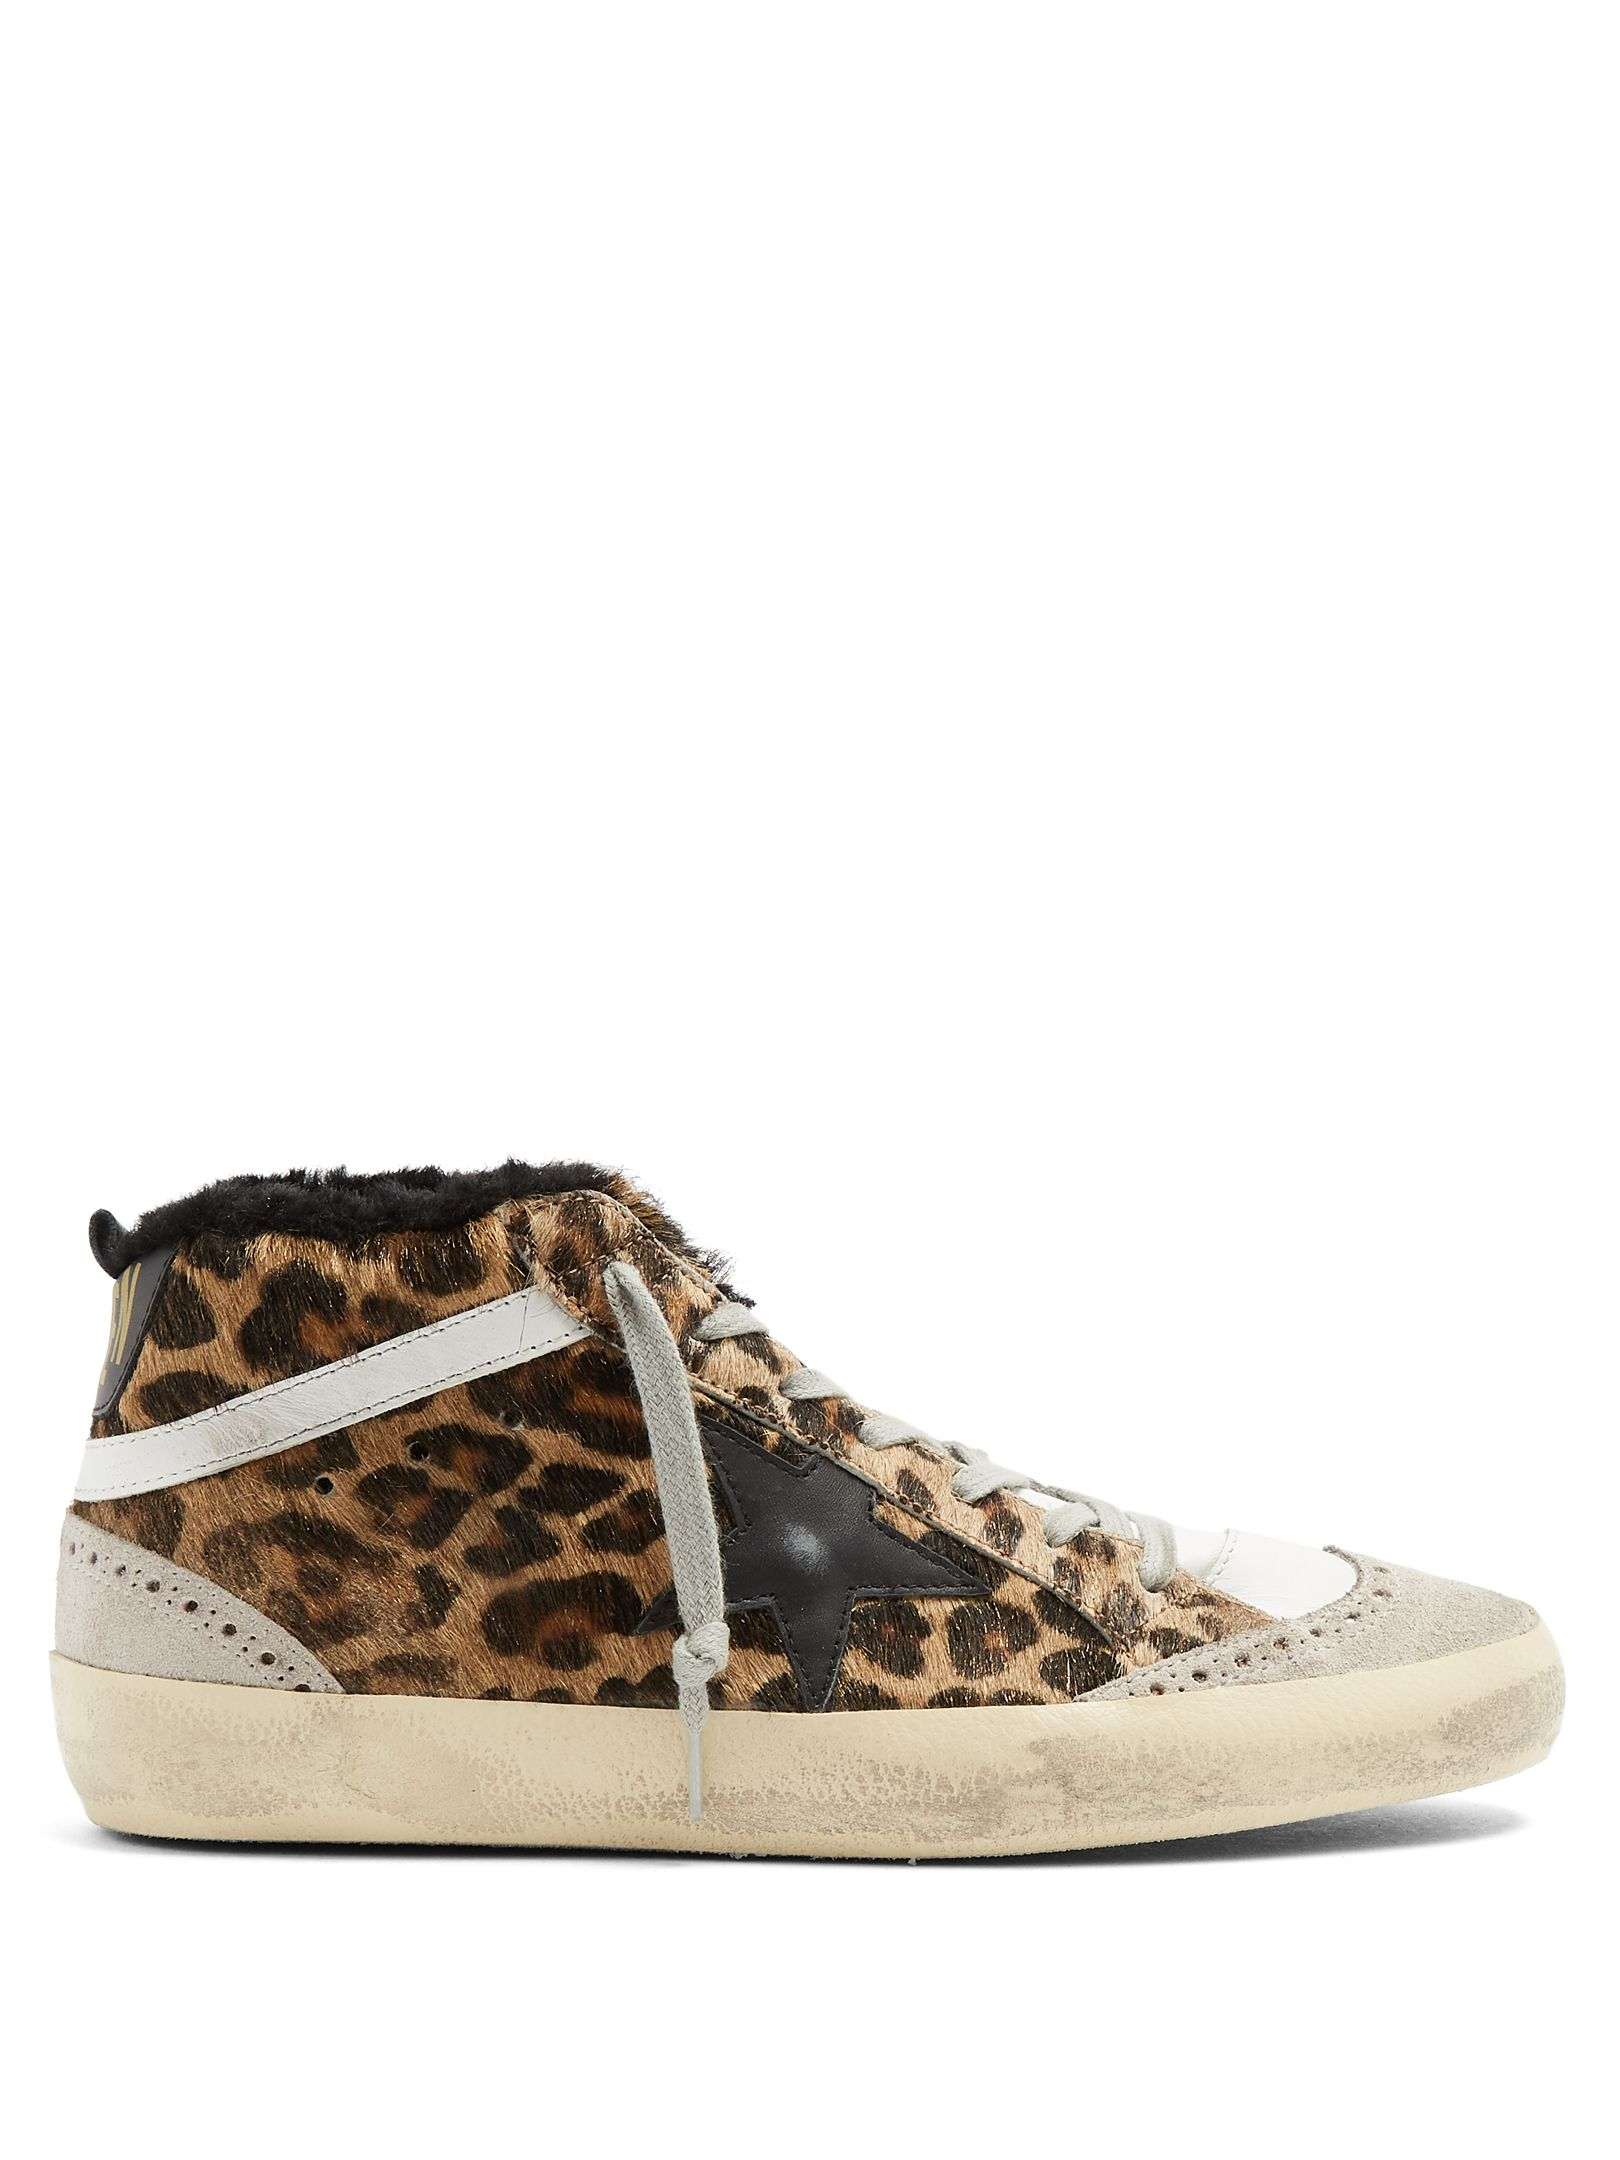 Golden Goose Mid Star Leopard Print Shearling Lined Trainers Goldengoose Cloth Calca